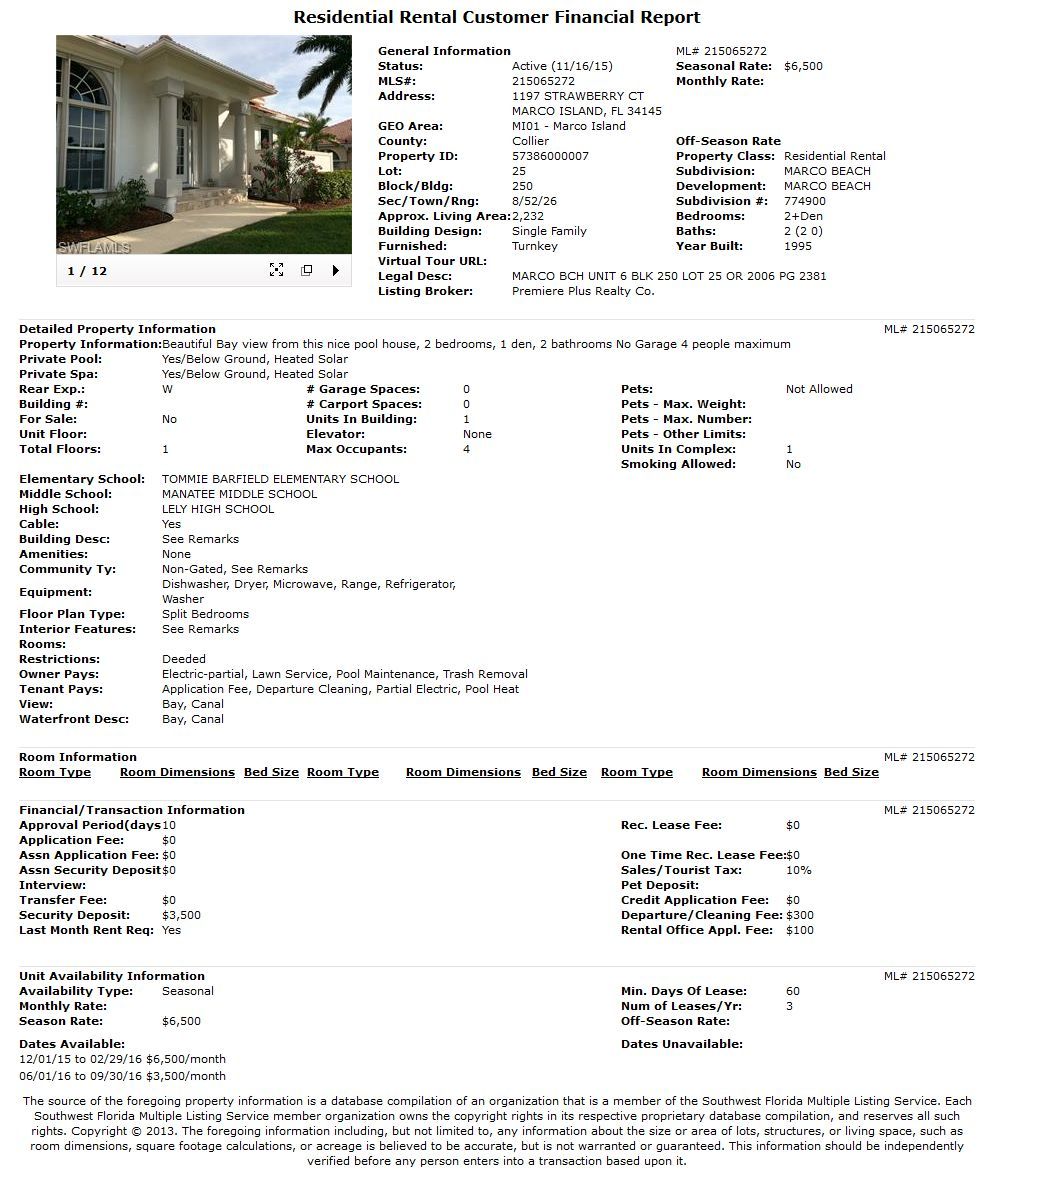 Residential Rental Customer Financial Report MARCO ISLAND SEASONAL RENTAL 1197 STRAWBERRY CT